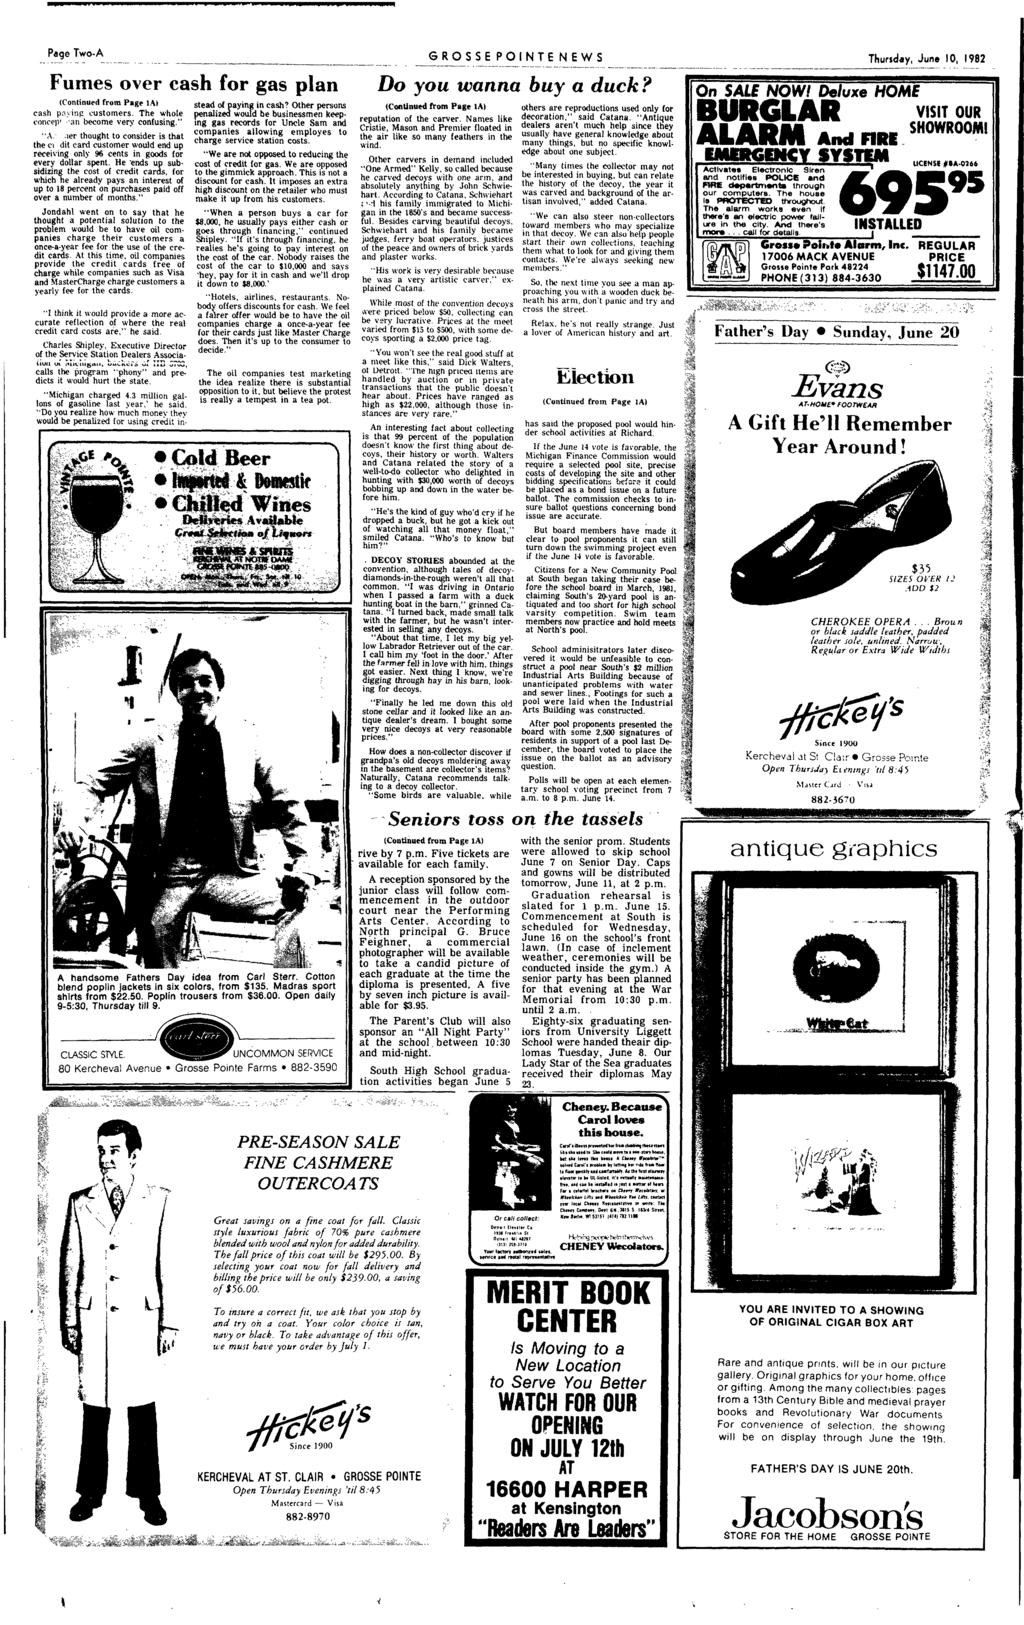 Page Two-A GROSSE PONTE NEWS Thursday June 10 1982 ----------- ------------ -- - - - -------- - ---------- ------ --------_ - --------- -------- - - ---------- ------ -_- Fumes over cash for gas plan